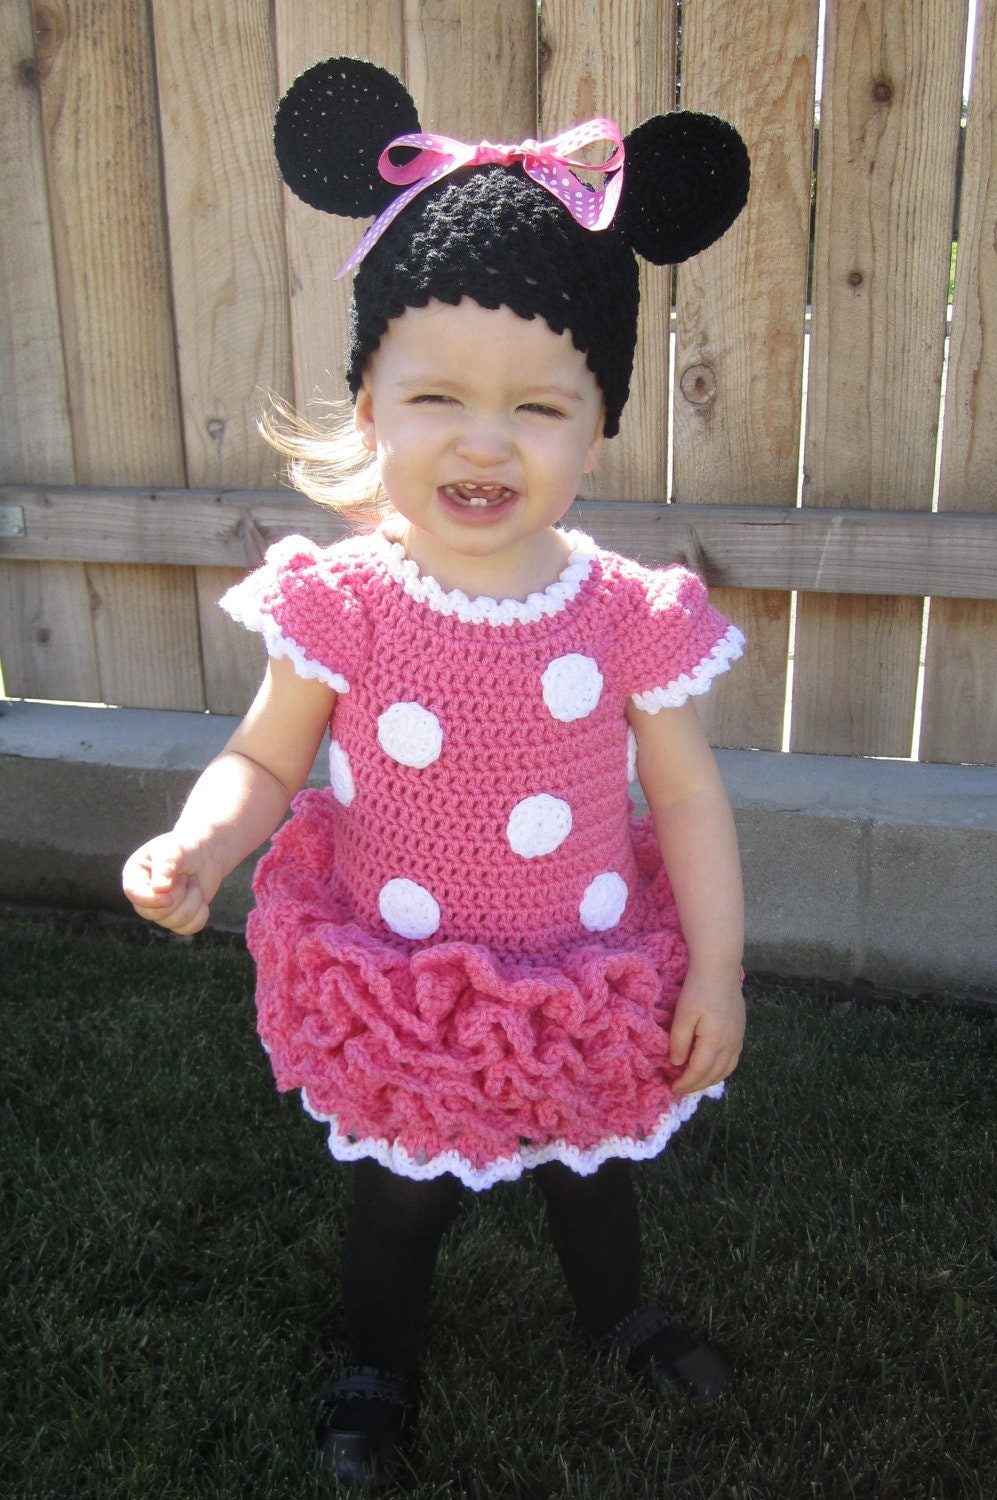 Minnie Mouse Crochet Dress And Ears In Pink By Juliescrochet33